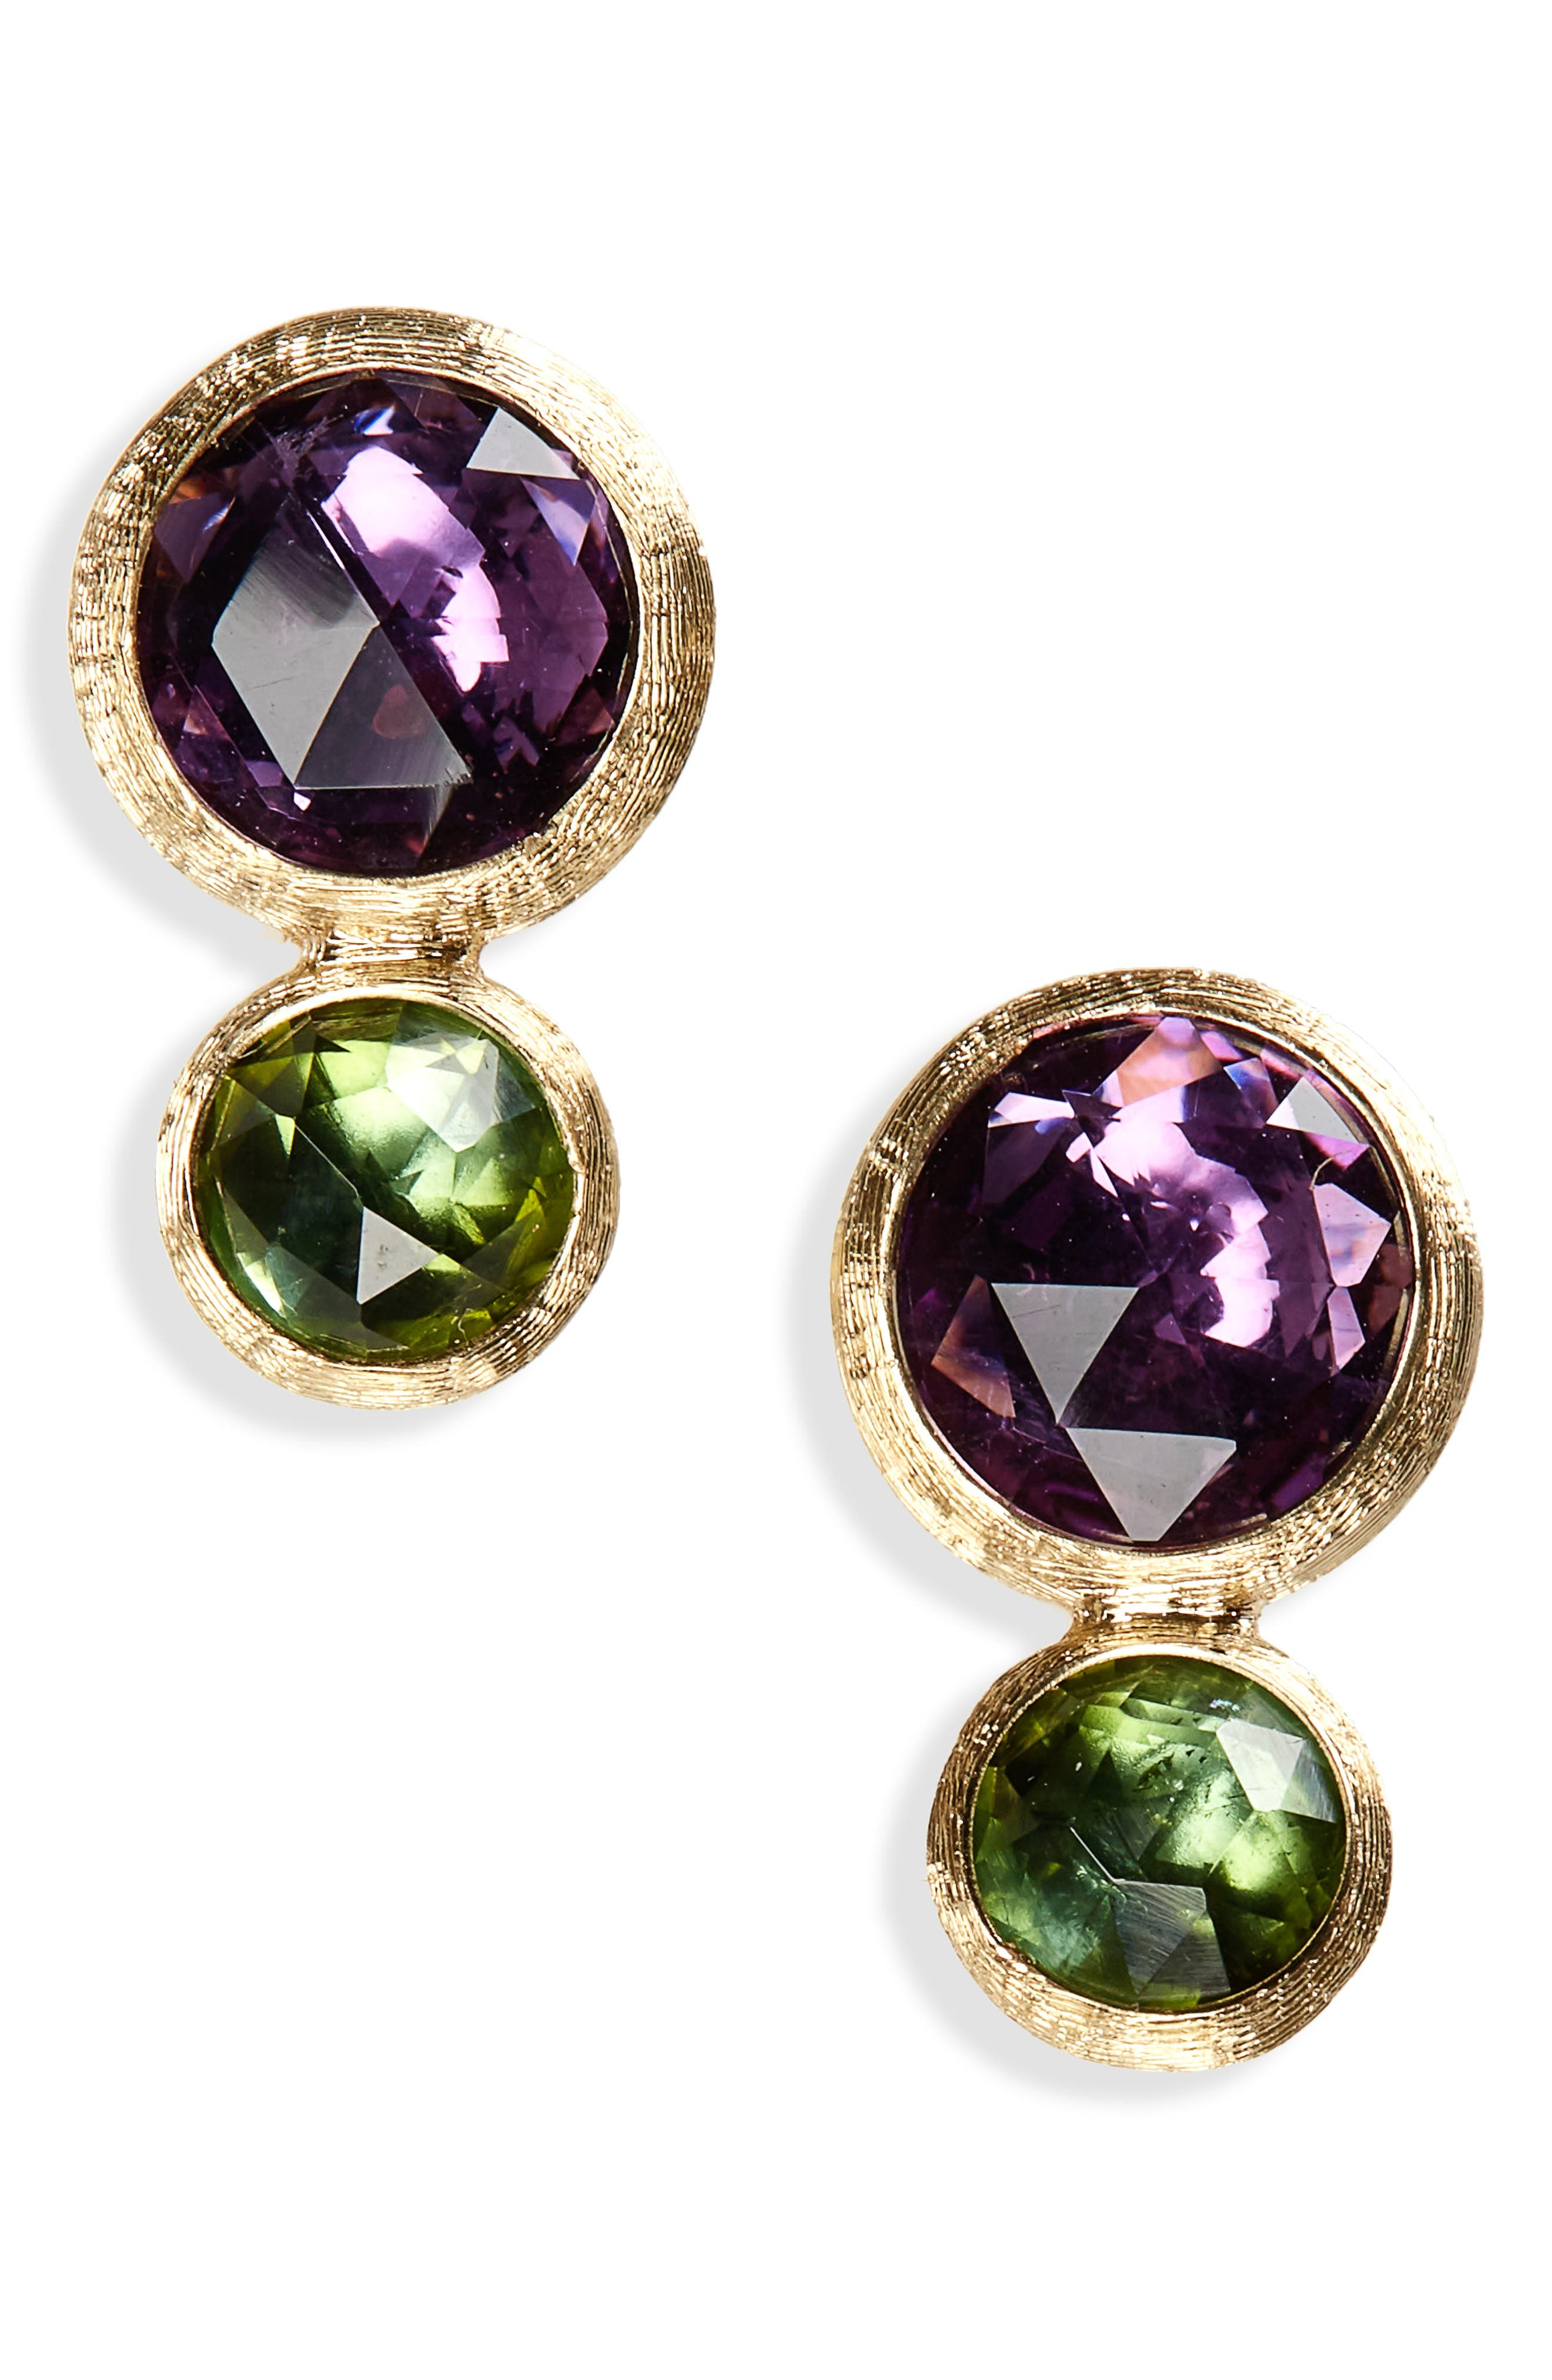 Marco Bicego Jaipur Amethyst & Tourmaline Stud Earrings